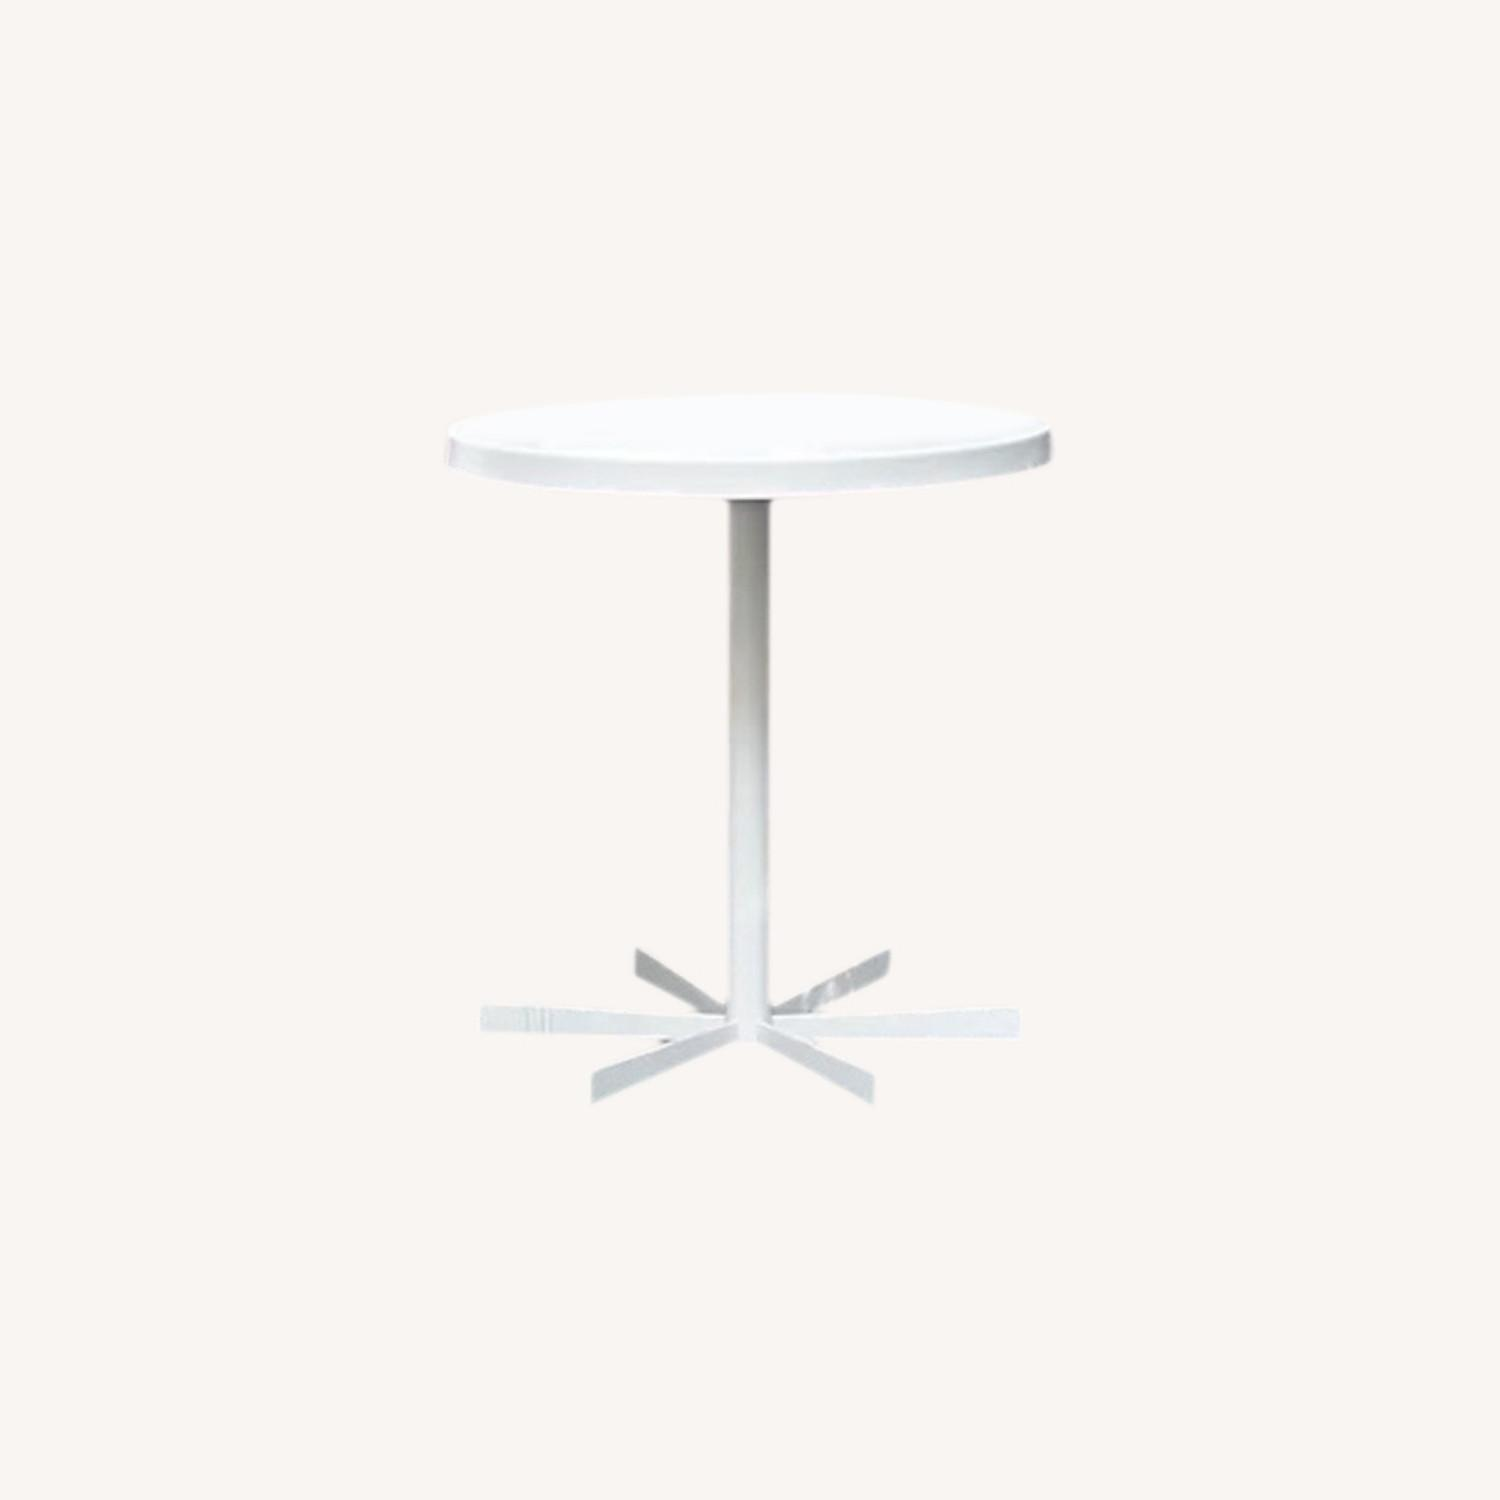 Room & Board Penelope Outdoor Cafe Table White - image-9